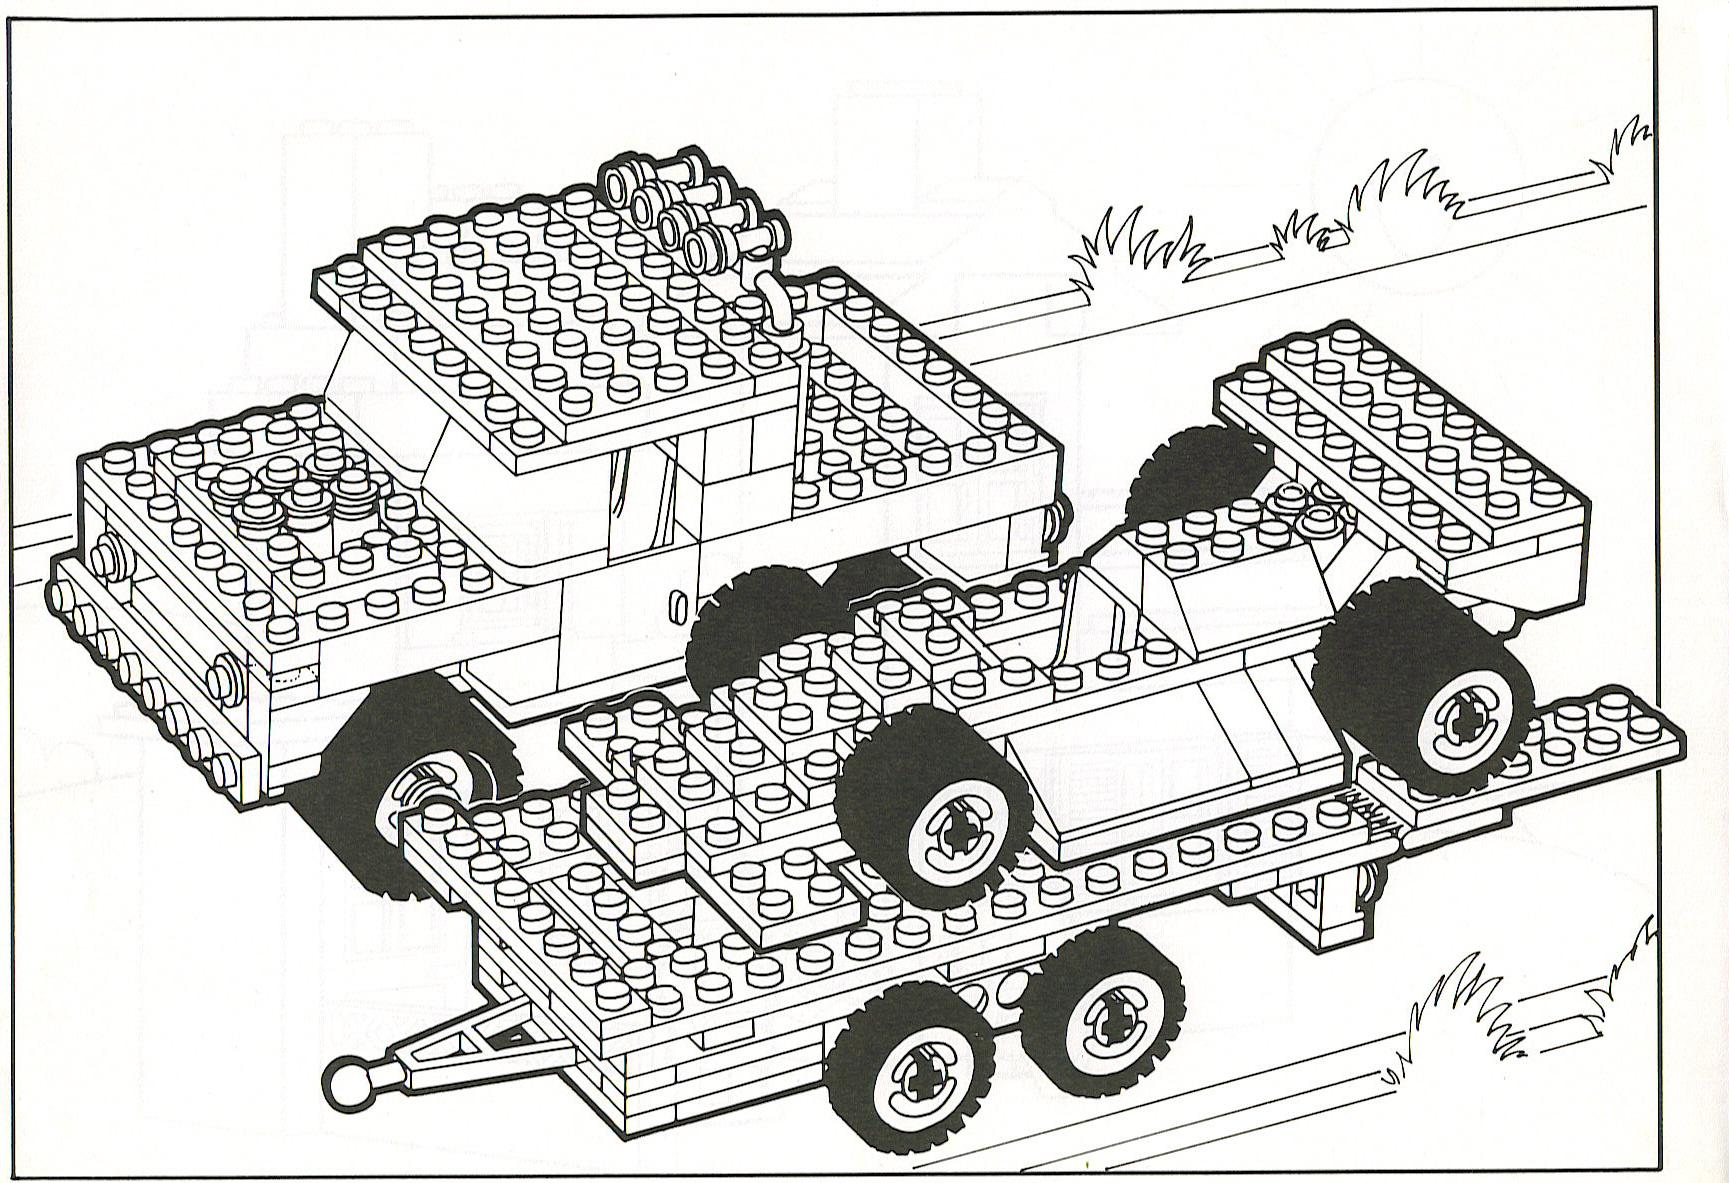 lego fire truck coloring page - photo #27